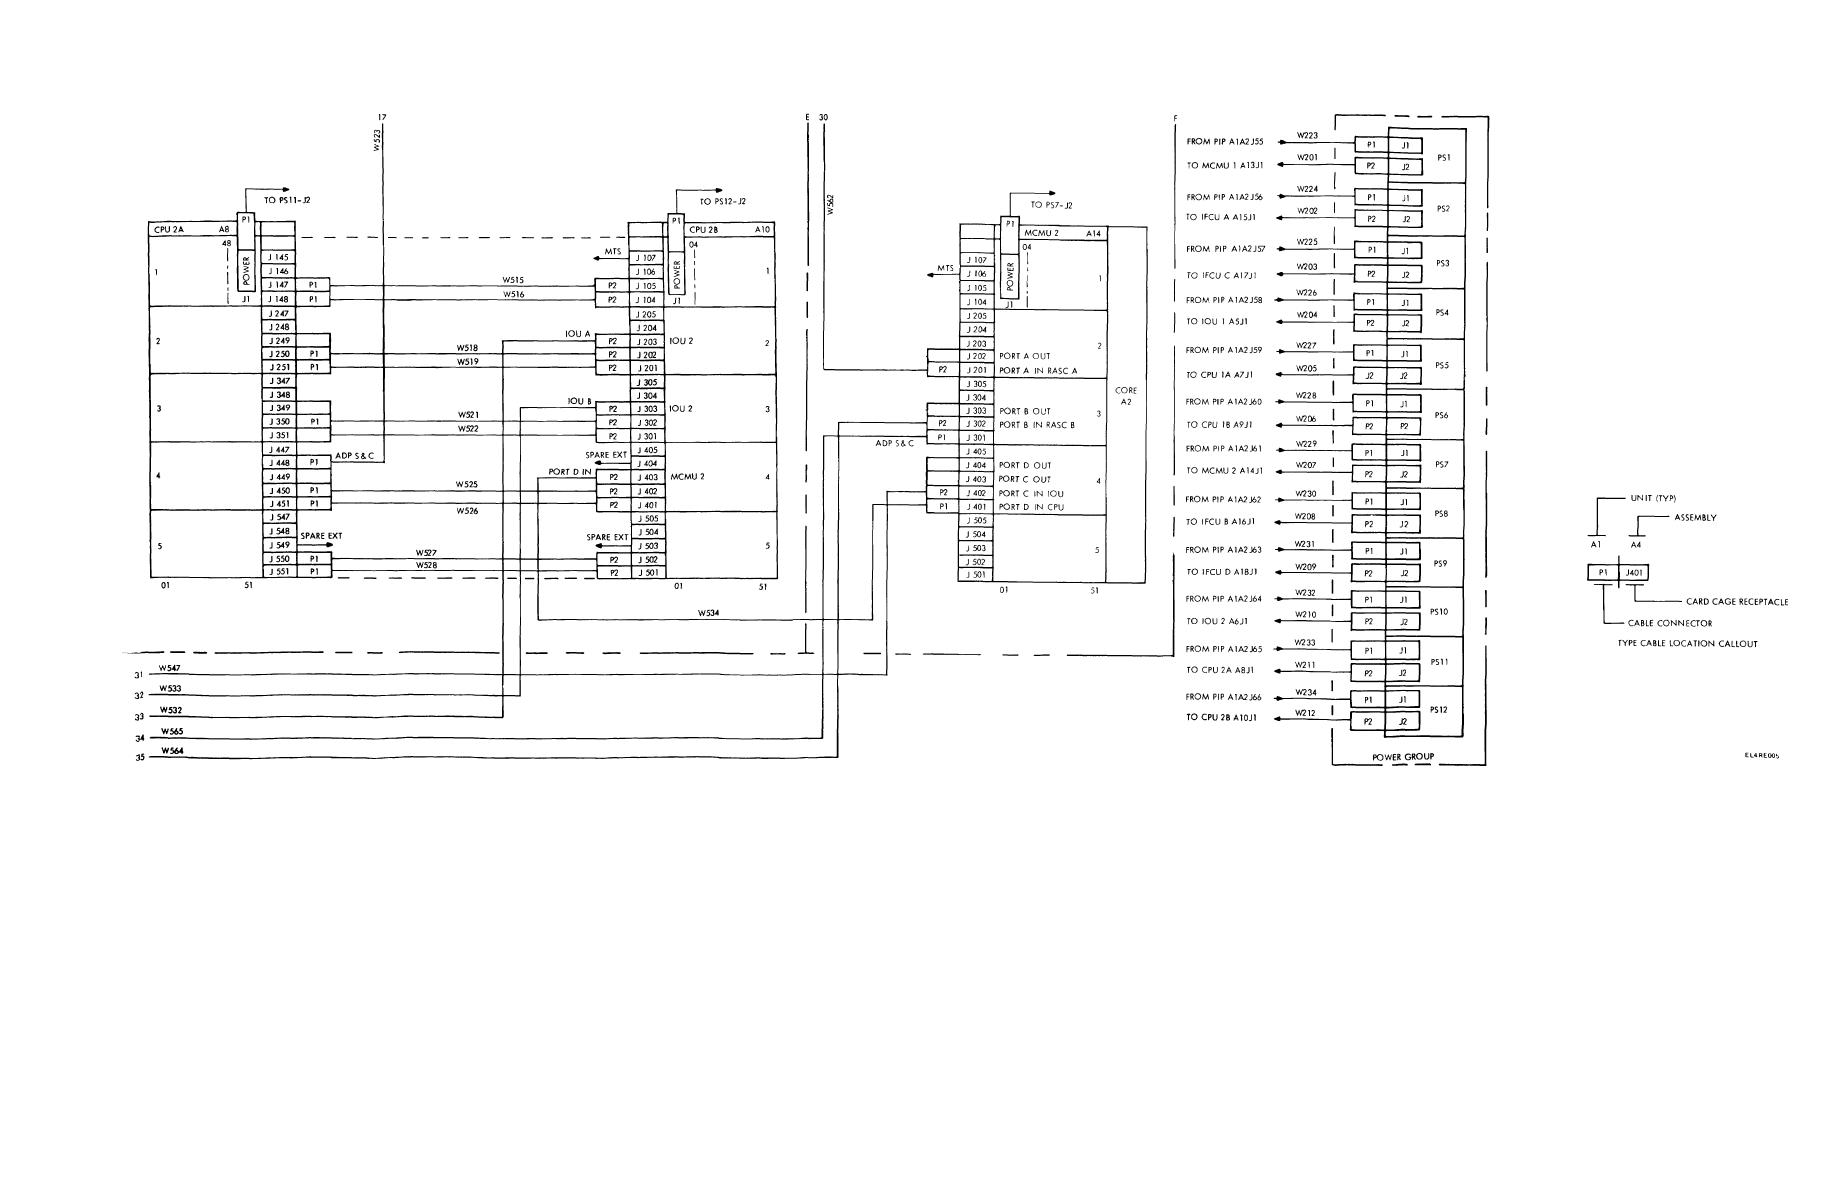 Figure FO-5. MSCPG Cable Interconnection Diagram (Sheet 1